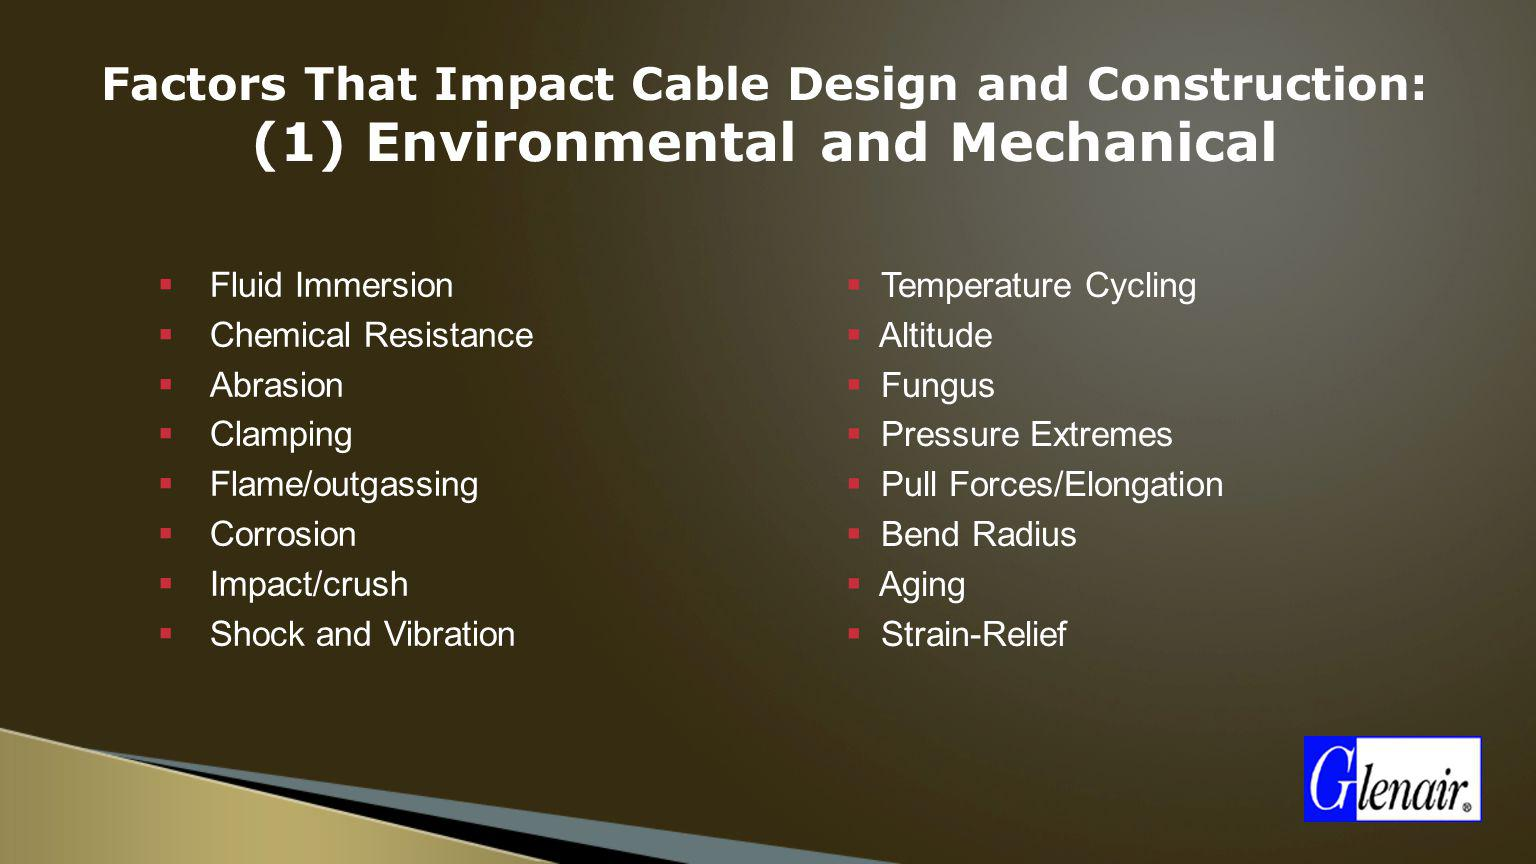 Factors That Impact Cable Design and Construction: (1) Environmental and Mechanical